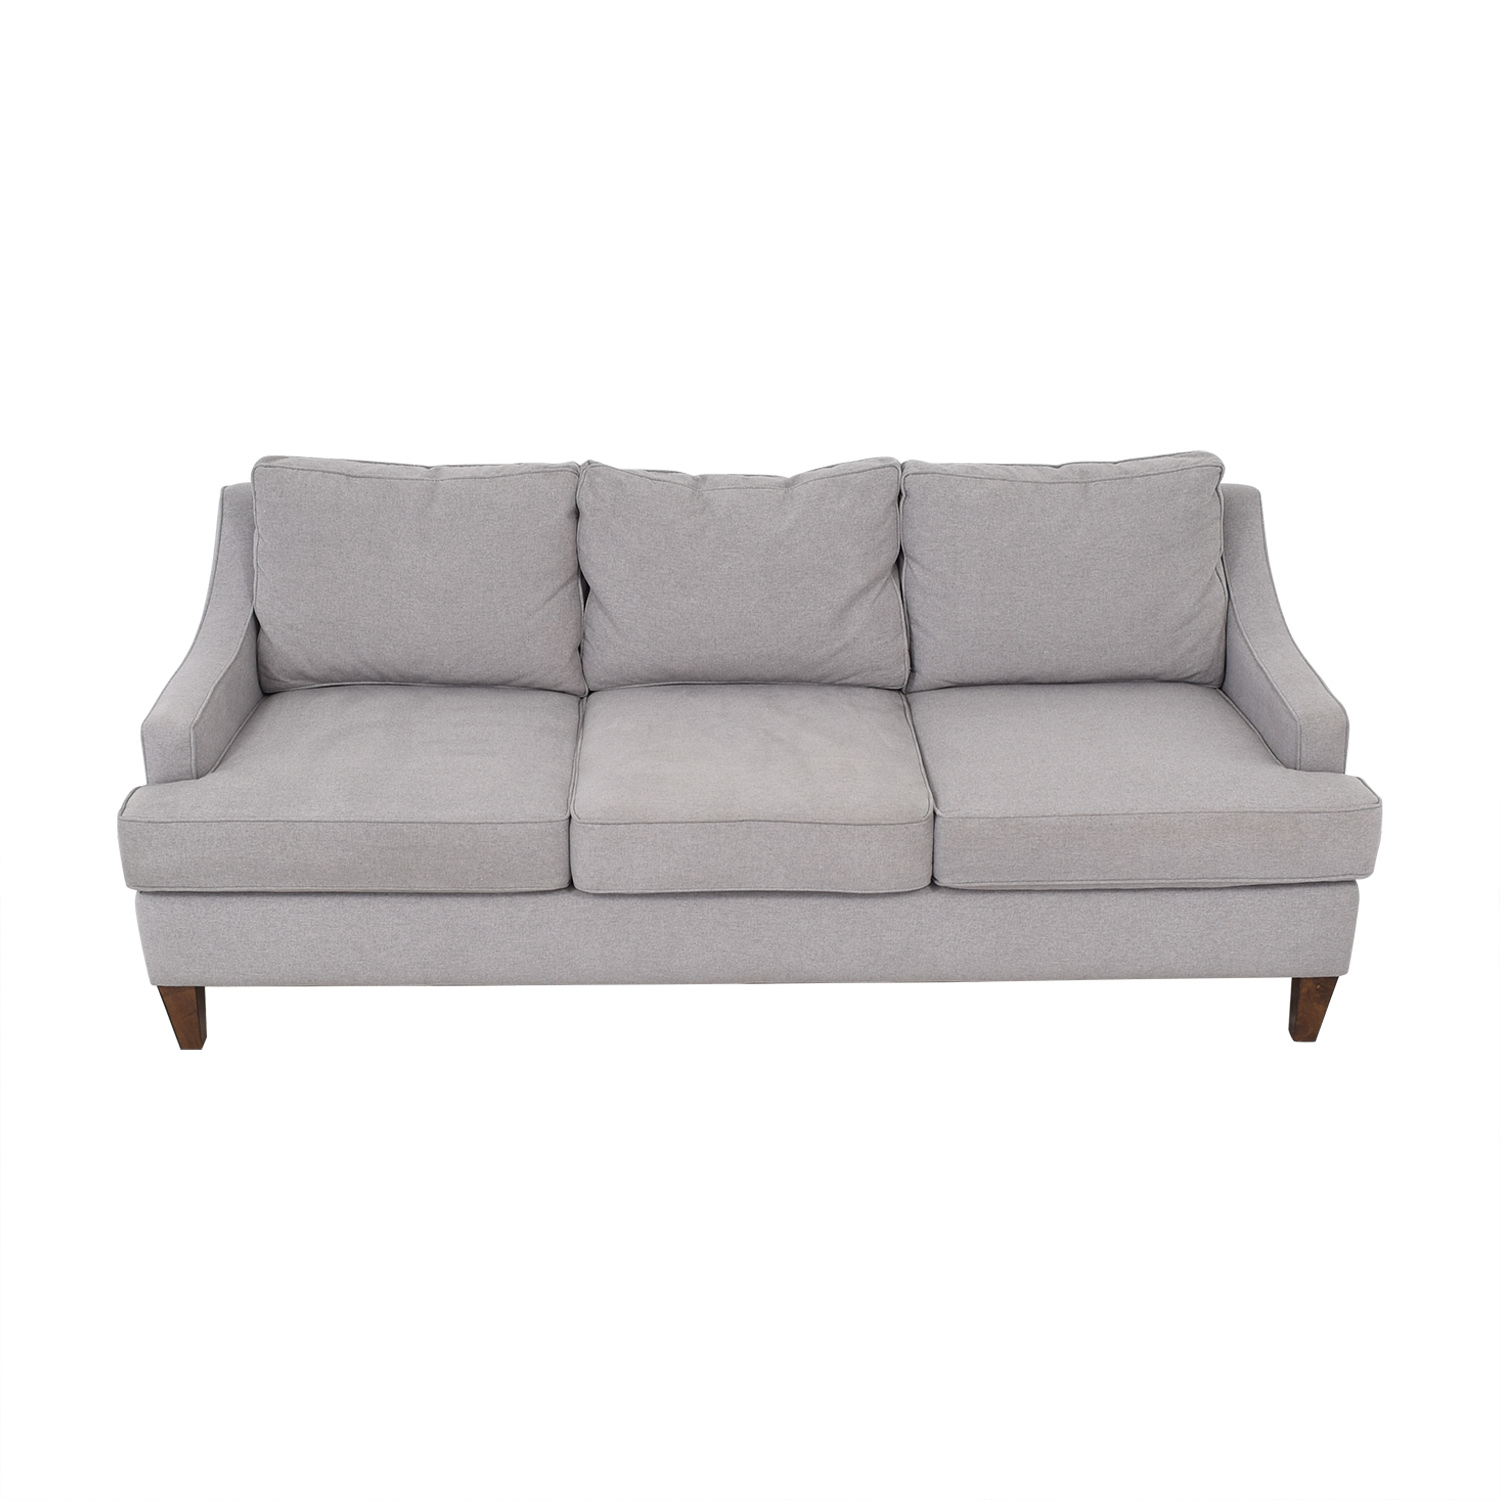 KFI KFI Furniture Three Seat Sofa discount